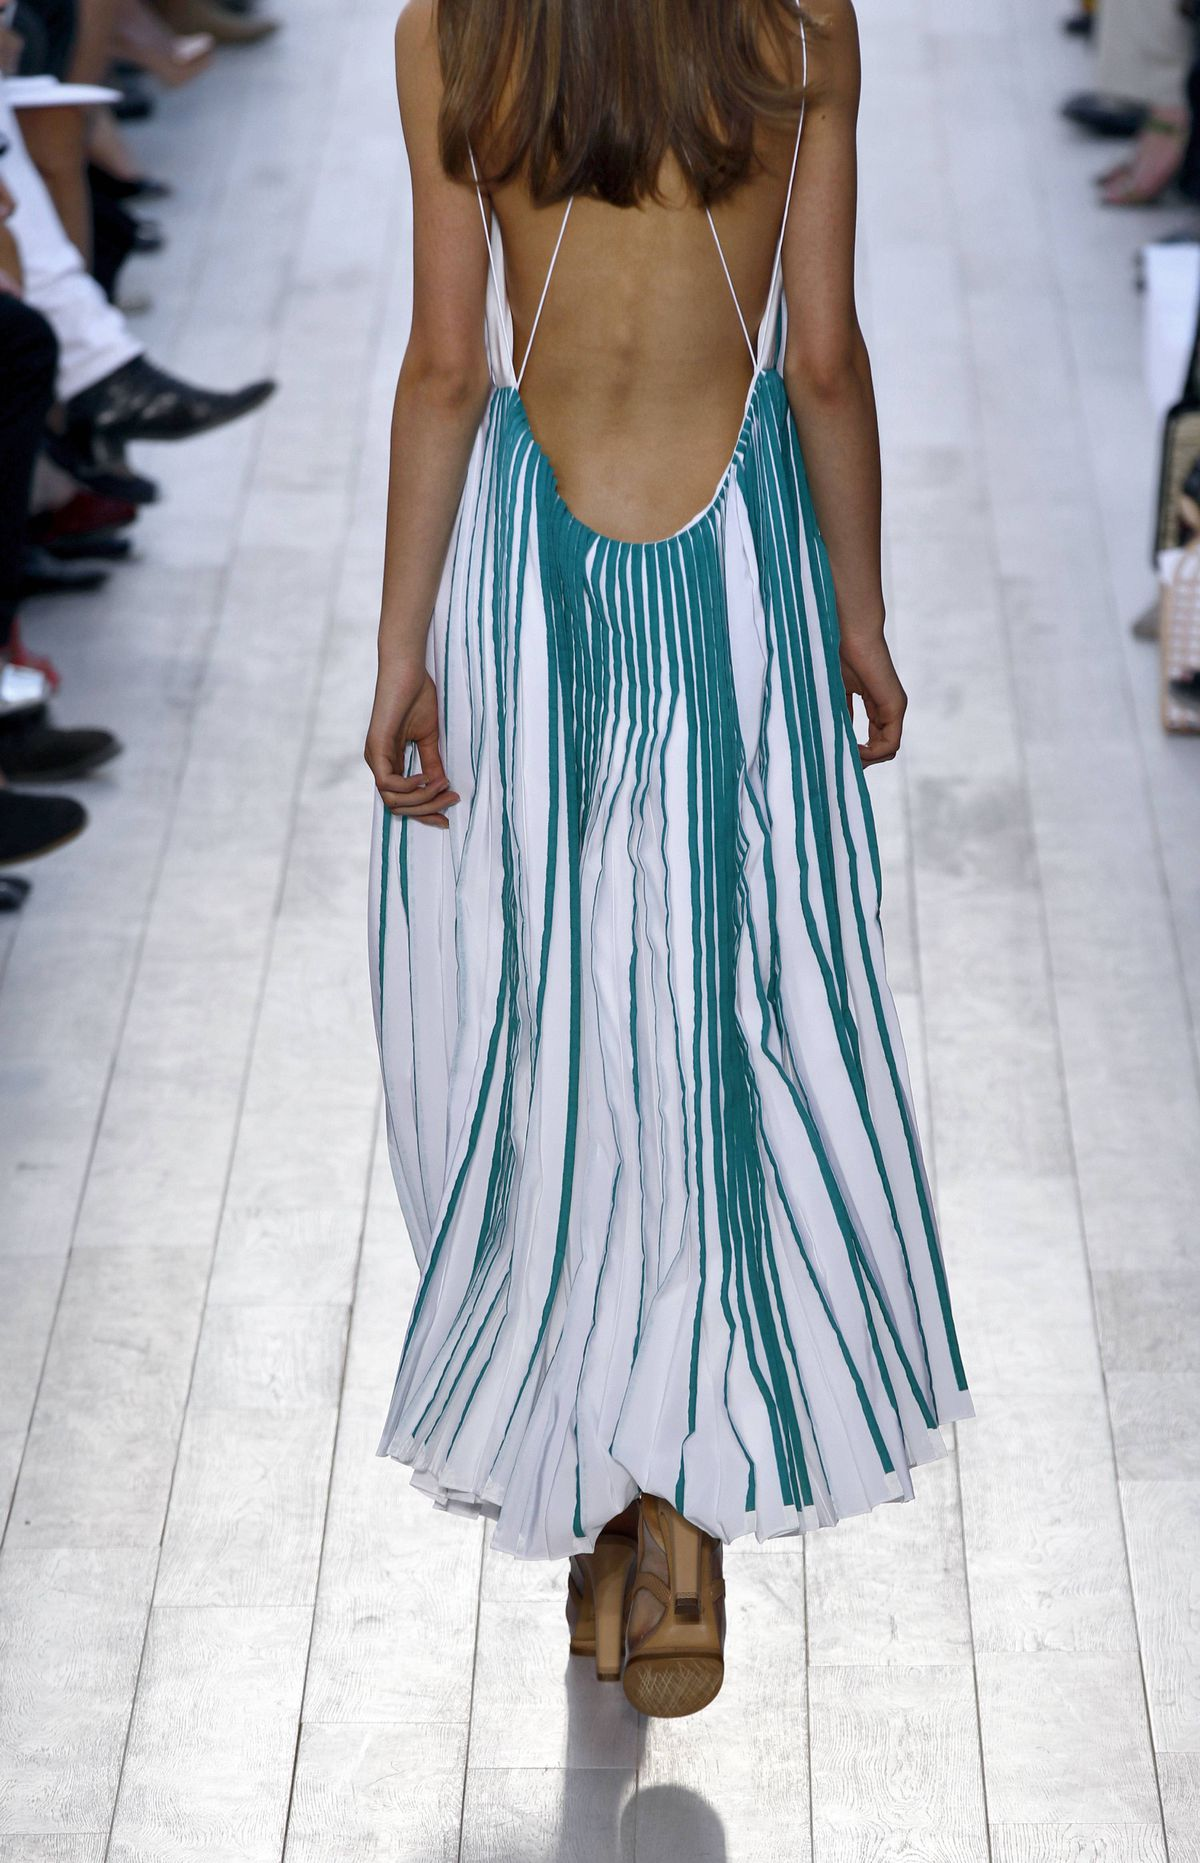 At least this is an unquestionably attractive back. But Chloé followers are likely pondering whether the collection was assertive enough. (It wasn't.)